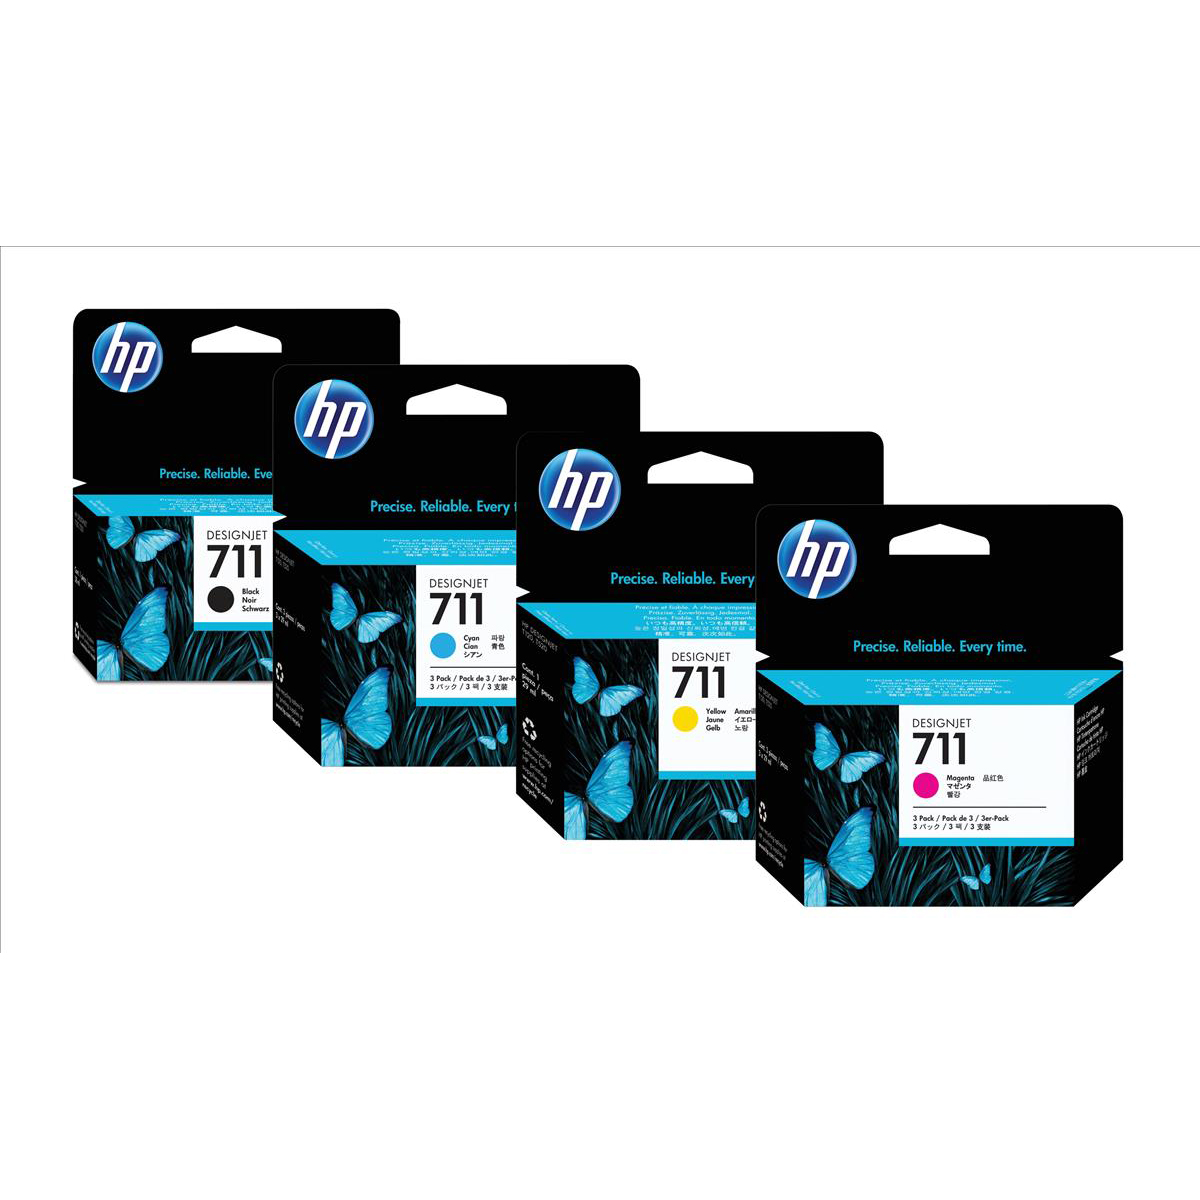 Hewlett Packard [HP ]No.711 Inkjet Cartridge 38ml Black Ref CZ129A